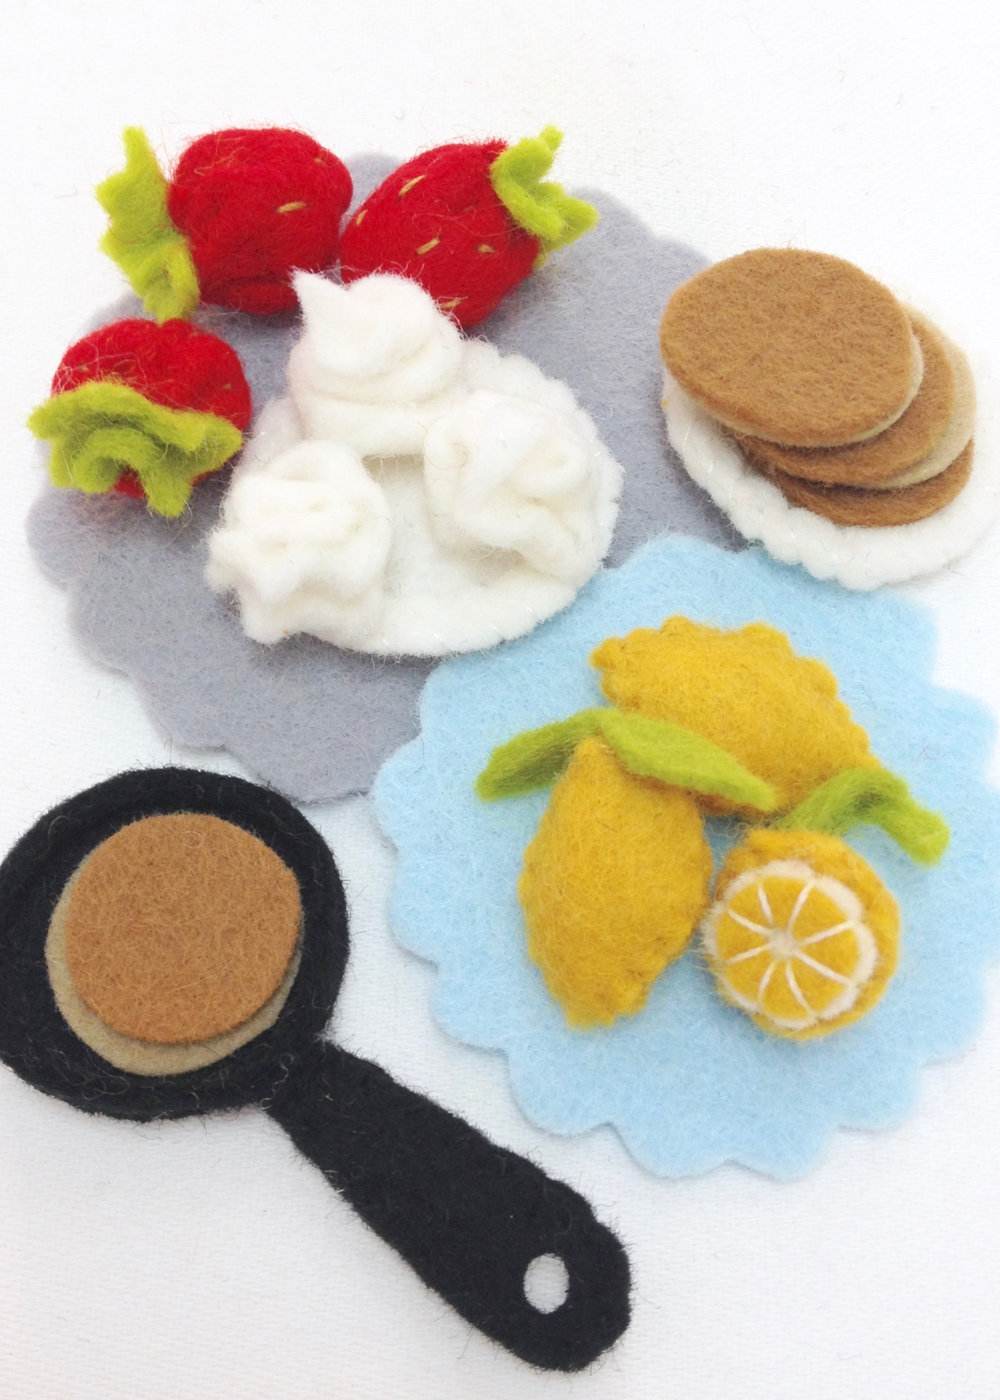 Felt play food miniature lemons | strawberries | pancakes handmade by Laura Mirjami